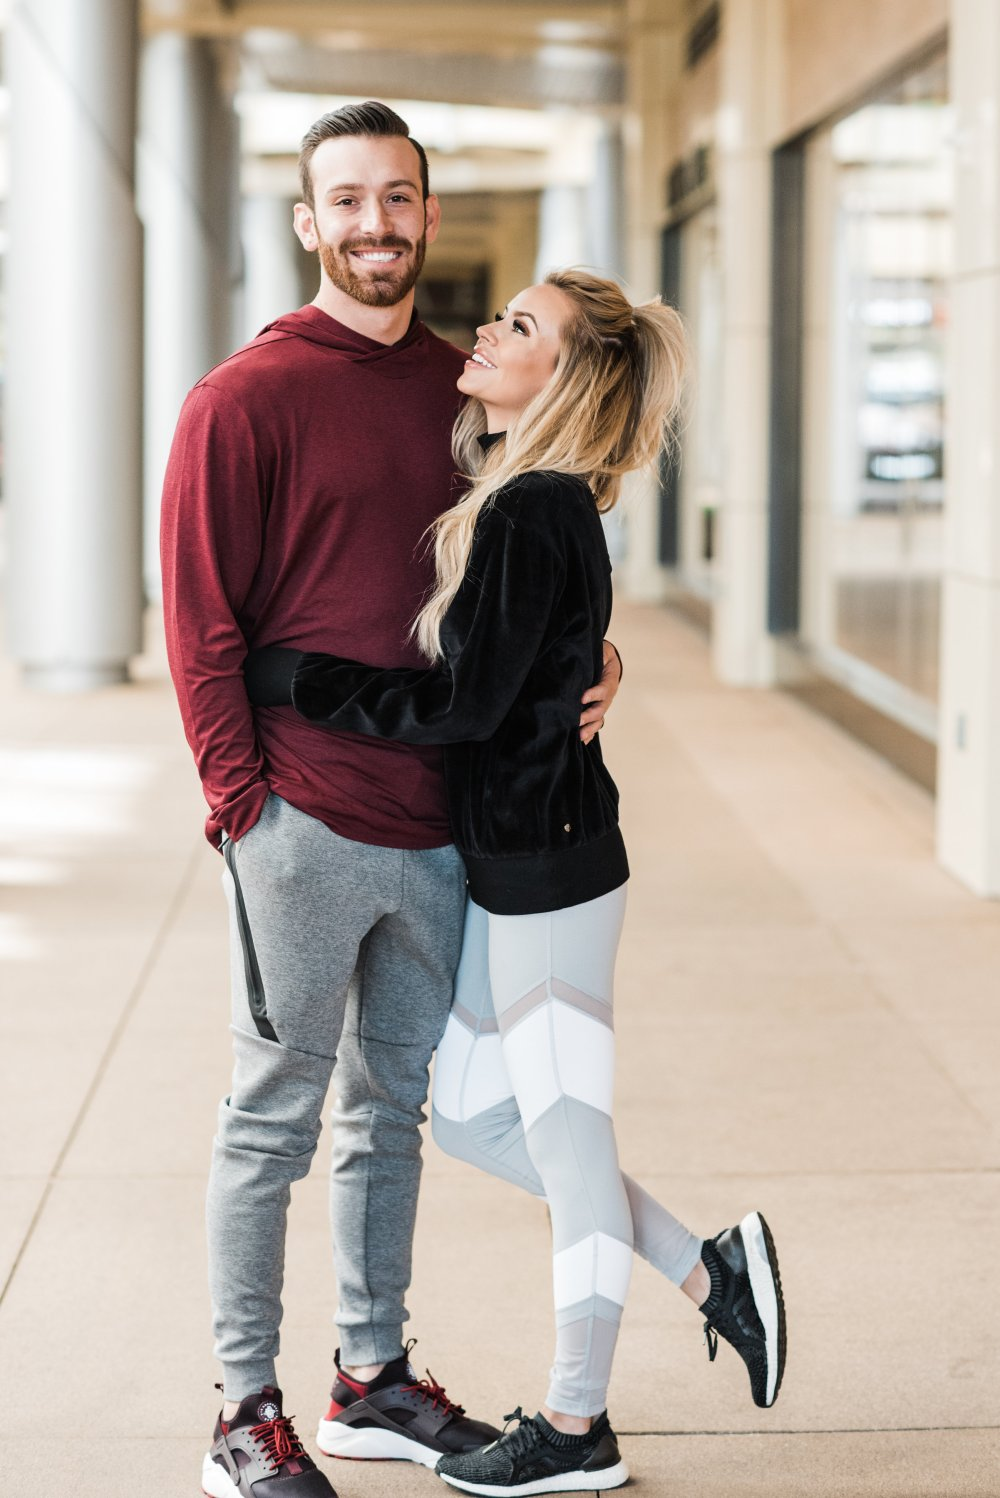 Some fitness motivation to help you stay active during the holidays! Our favorite workout clothes for men and women! Don't lose sight of your fitness goals during the holidays! #fitnessmotivation #fitnessfashion #holidayworkouts